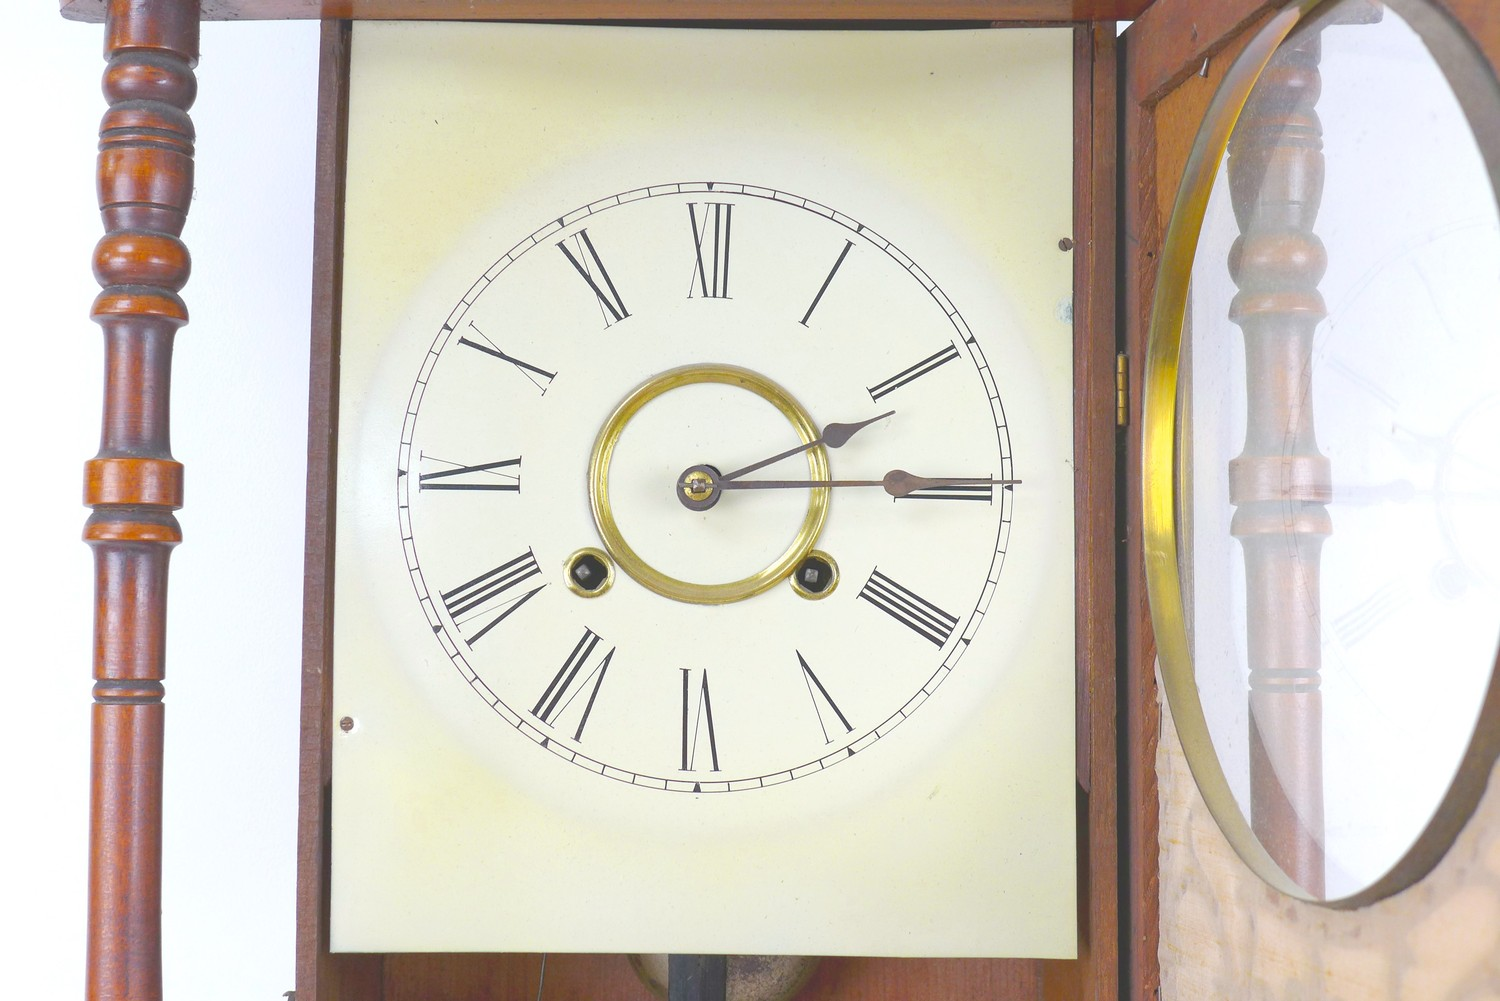 An early 20th century Vienna regulator wall clock with Tunbridge ware inlaid mahogany case, a - Image 3 of 5